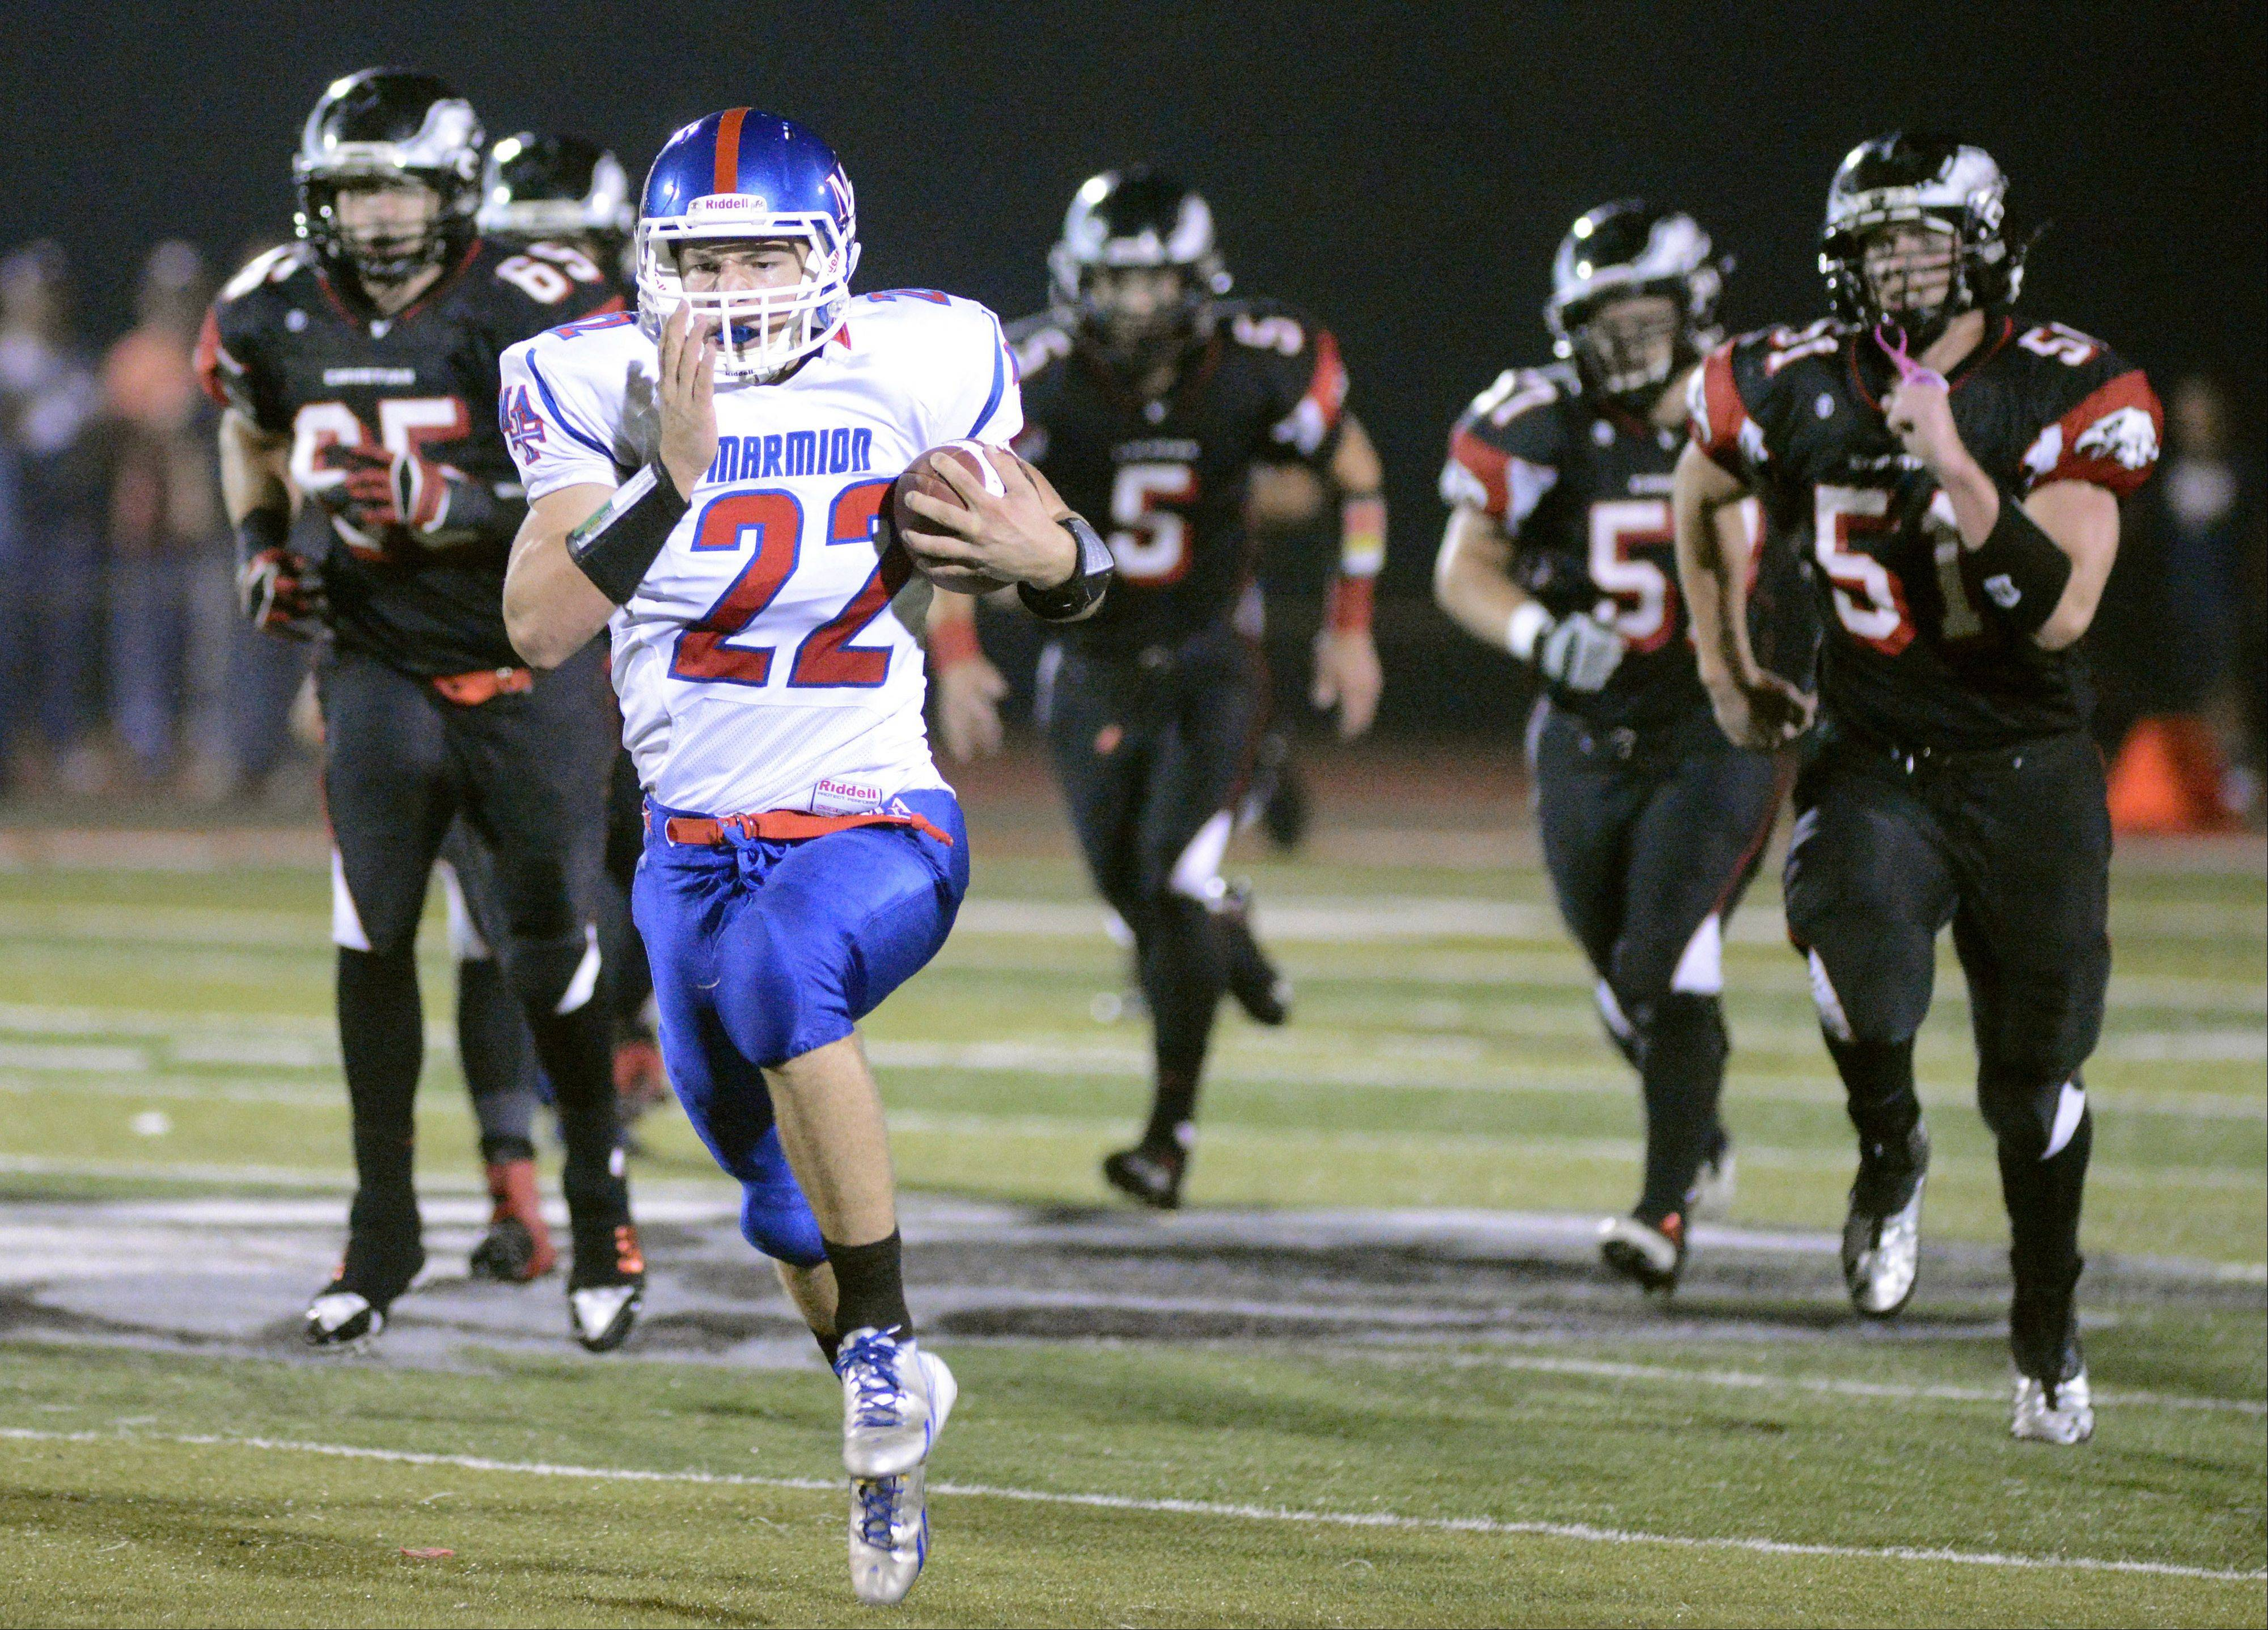 Marmion Academy's Jordan Glasgow sprints from Aurora Christian's defense on his way to scoring a touchdown in the first quarter.